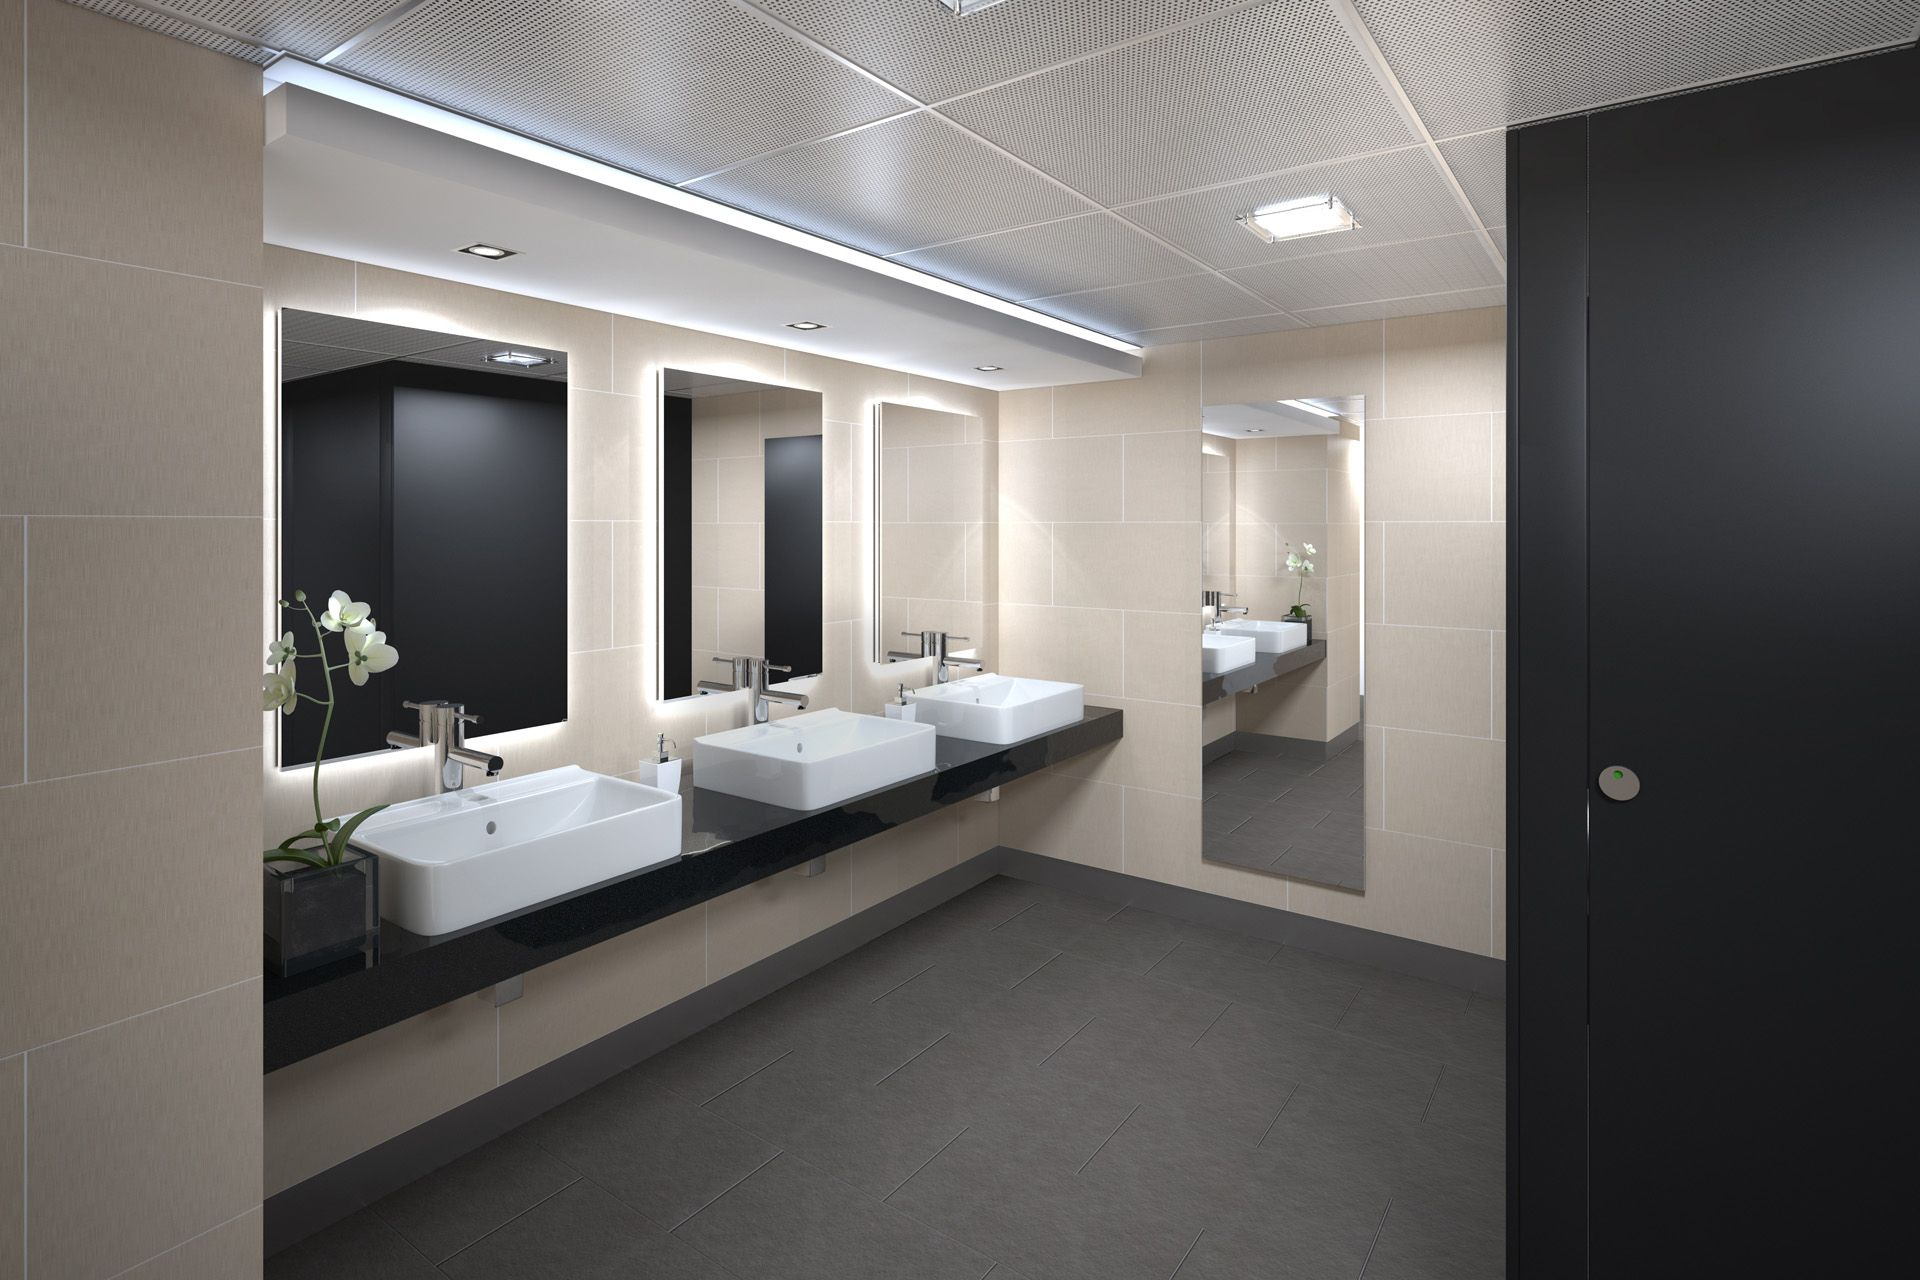 commercial bathroom design ideas - Commercial Bathroom